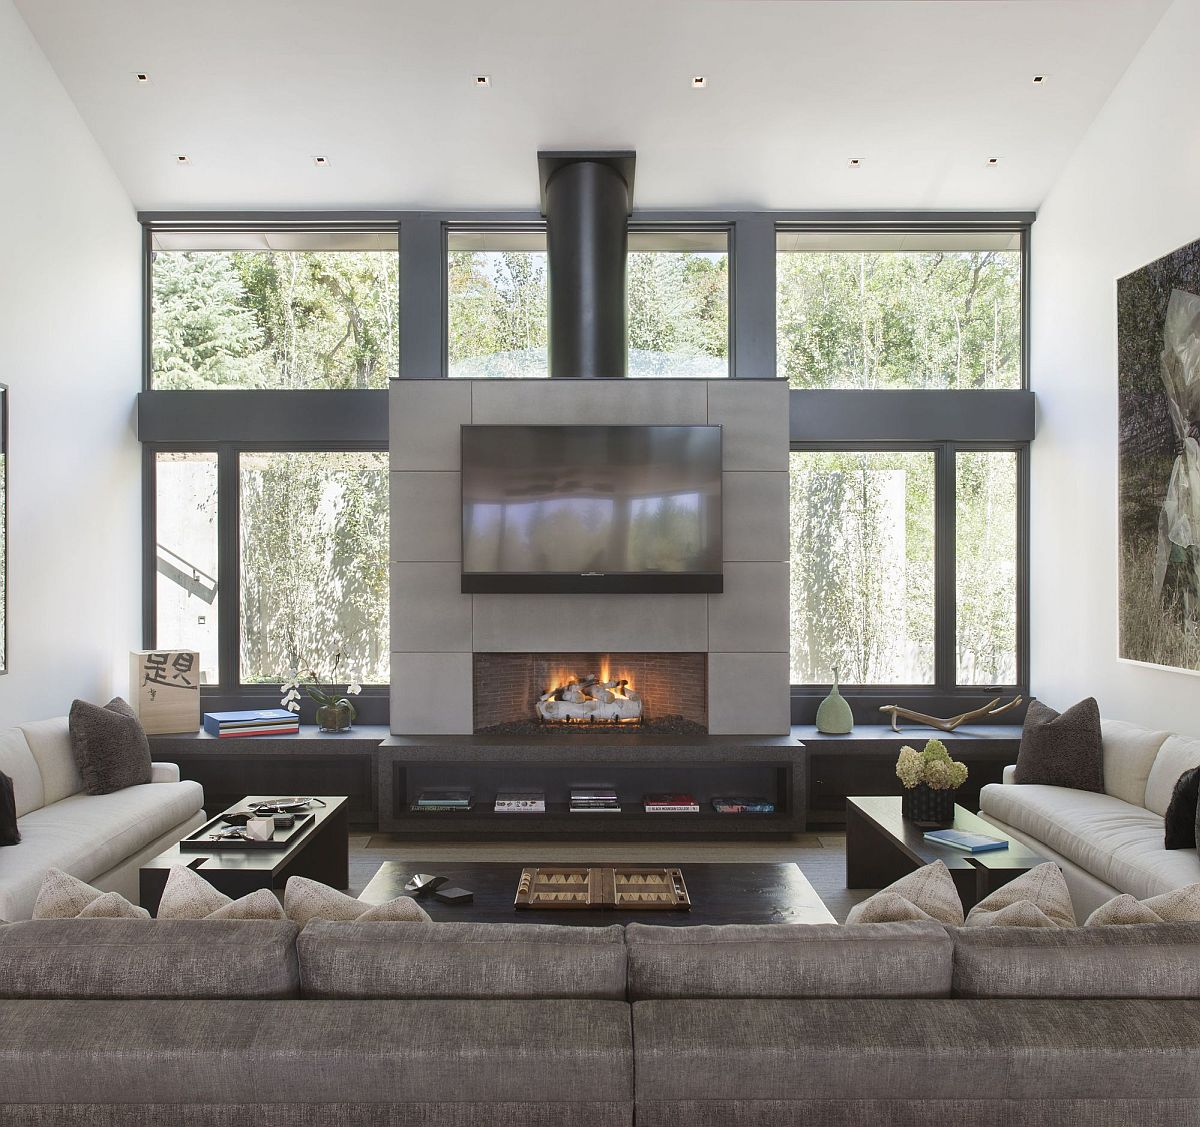 Fireplace sits at the heart of the contemporary living room with comfortable couches all around